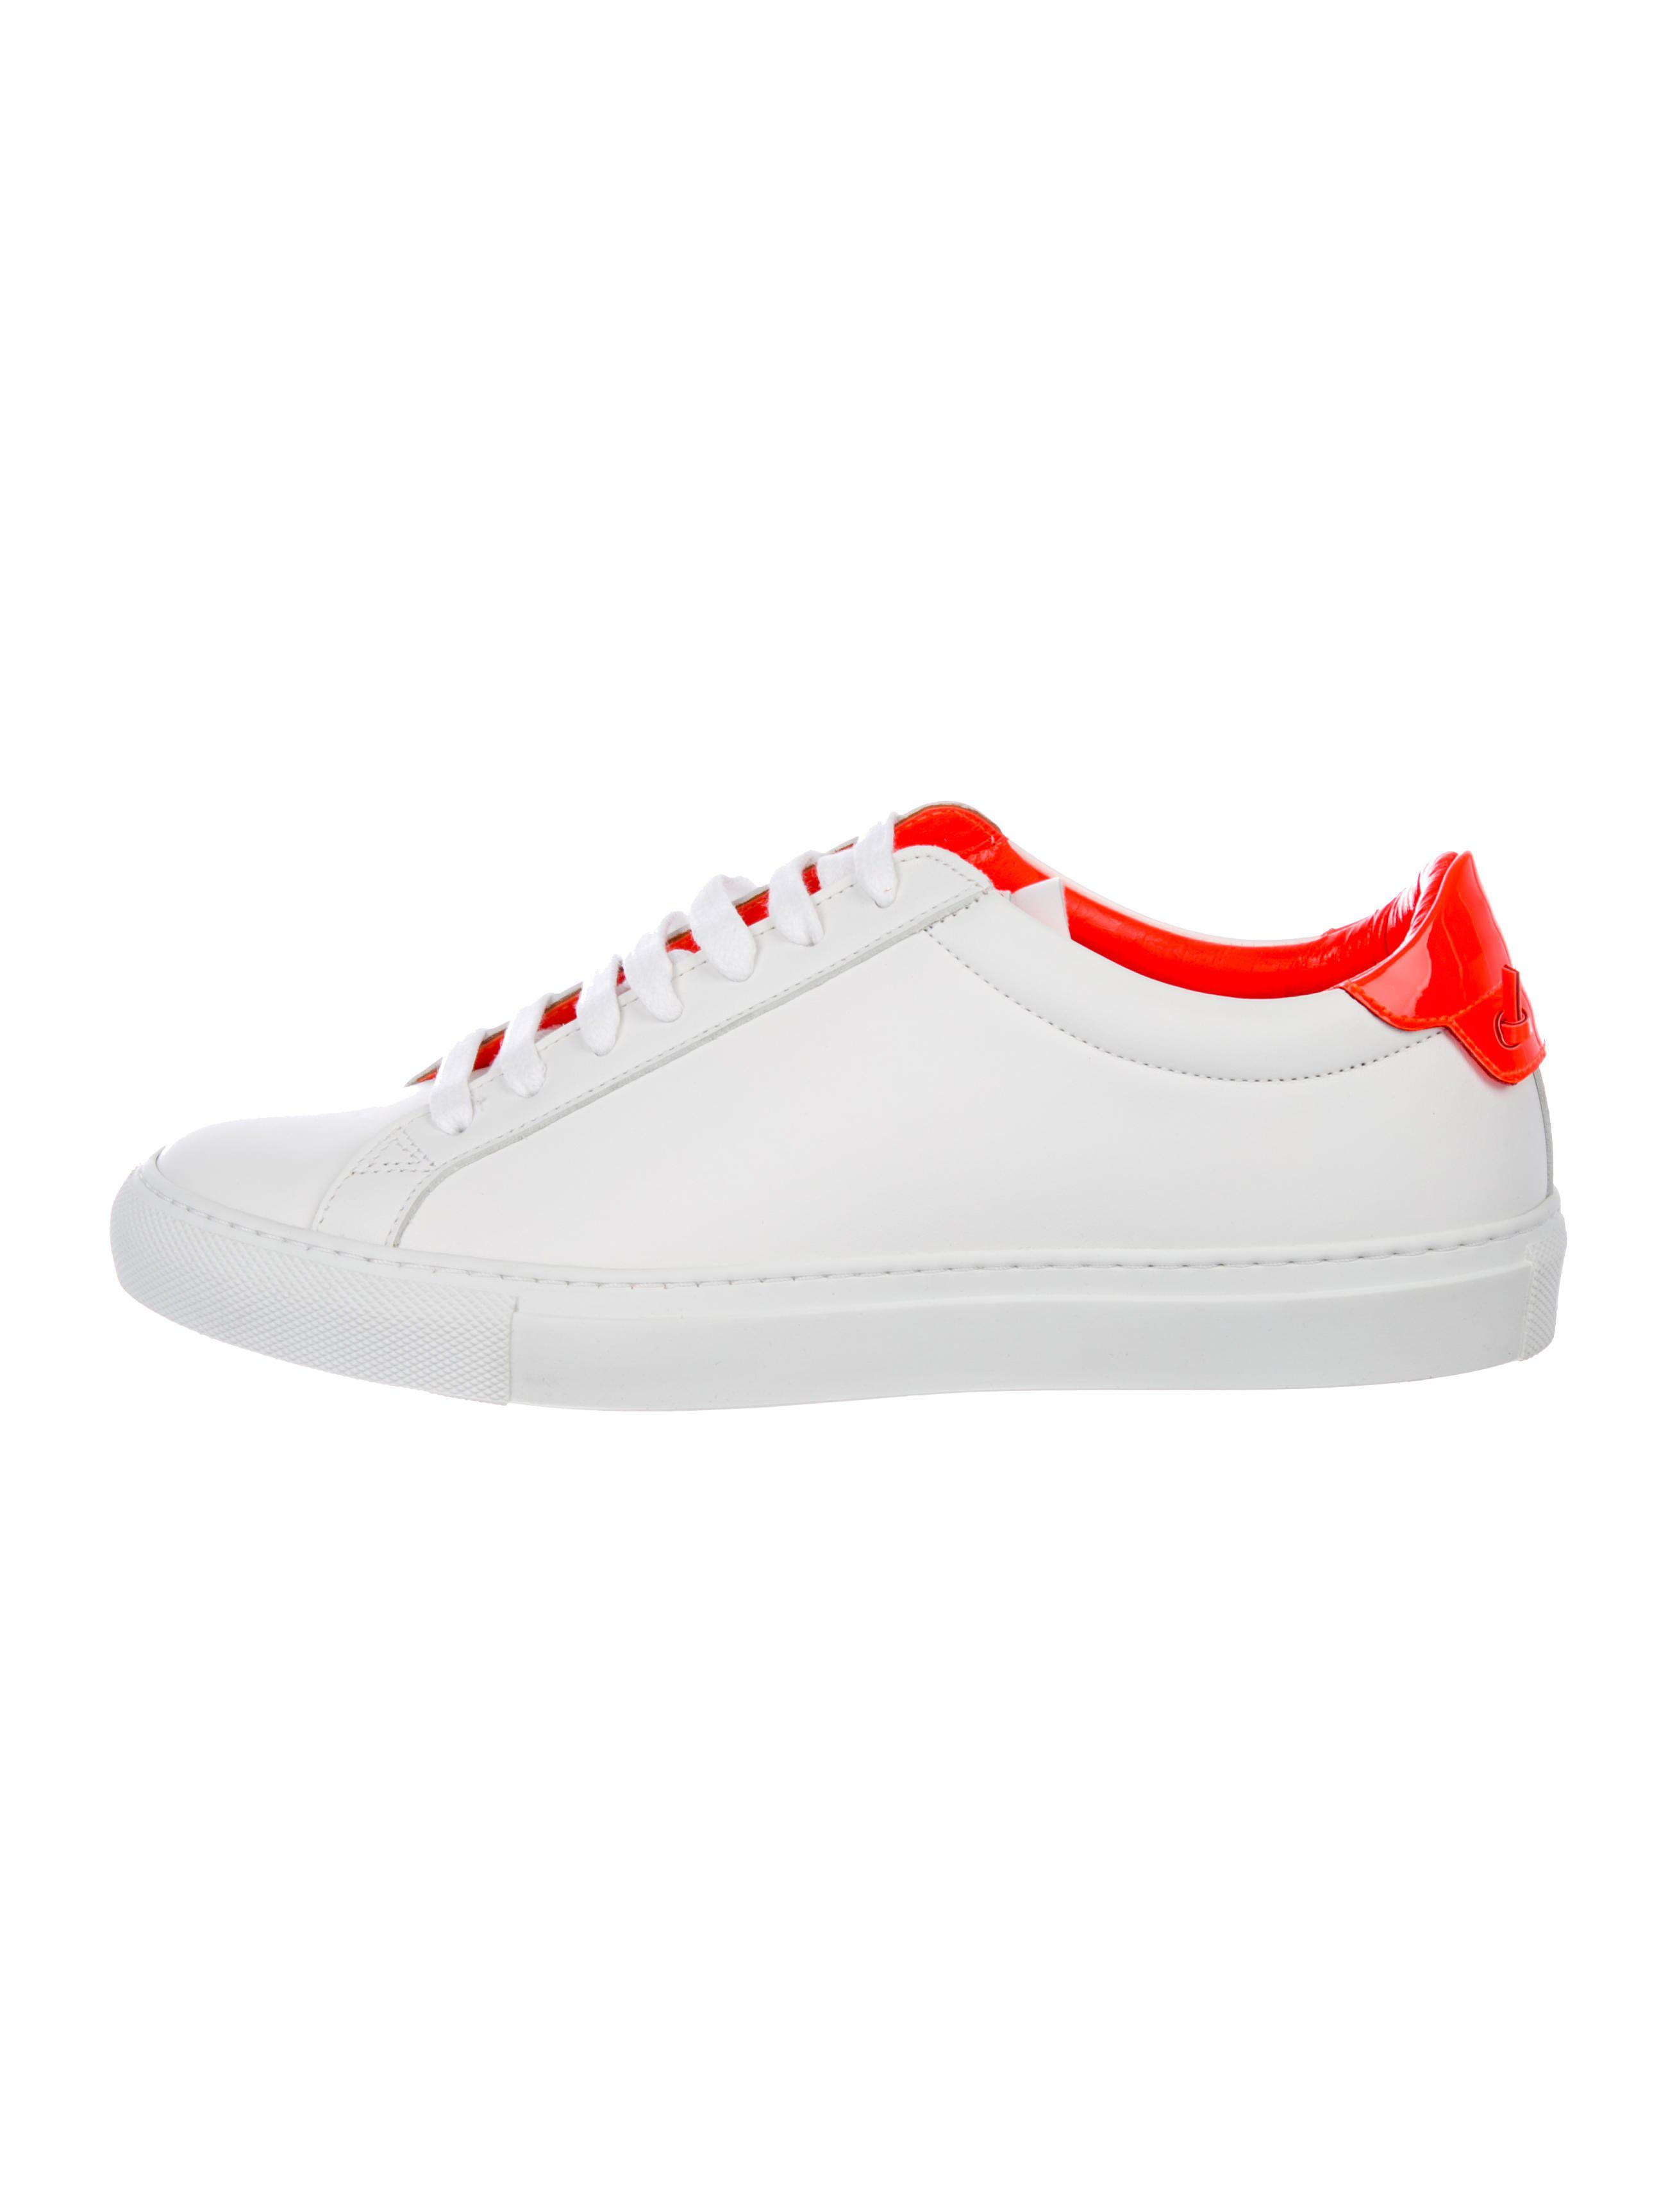 Givenchy 2017 Urban Street Sneakers outlet websites eastbay cheap online clearance 2014 unisex free shipping classic cheap latest I26WGLu